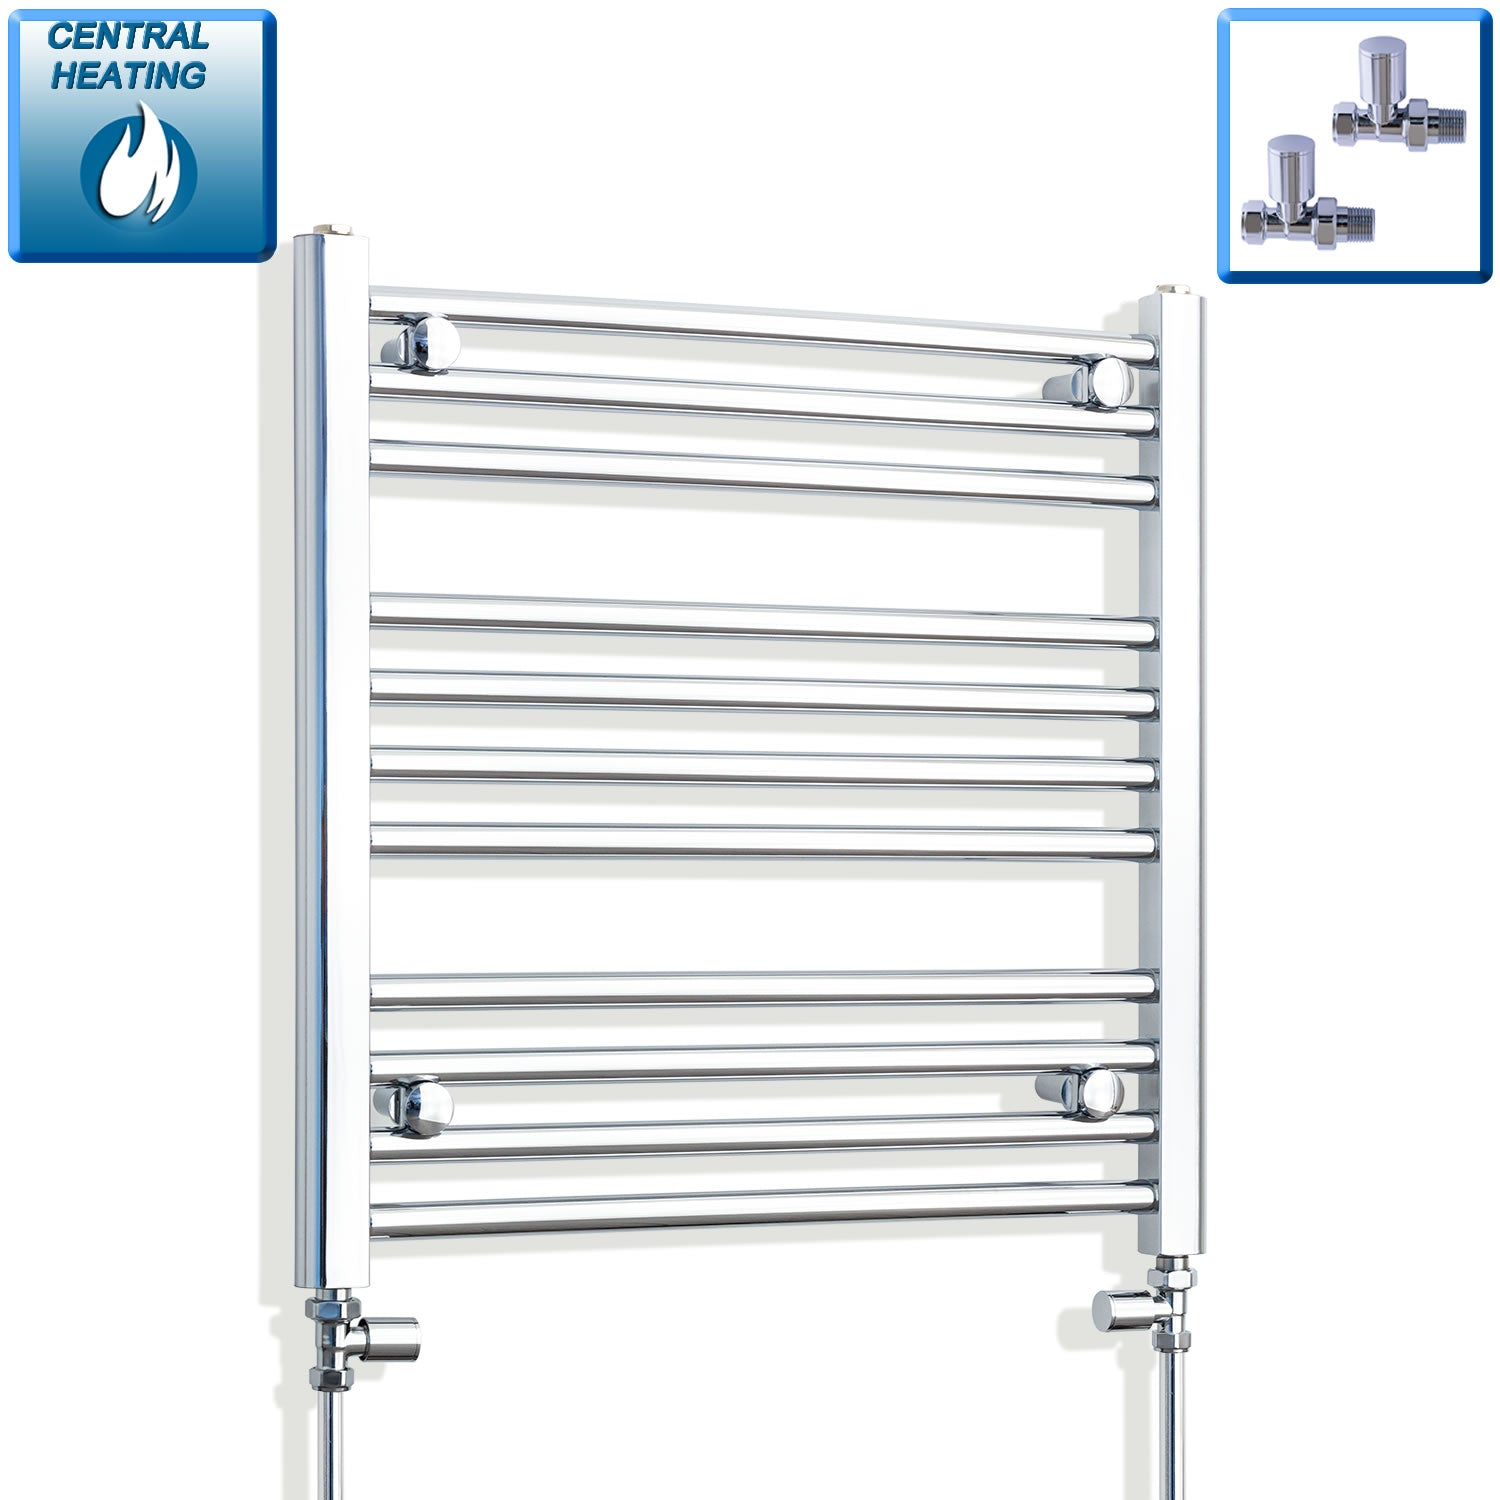 650mm Wide 600mm High Chrome Towel Rail Radiator With Straight Valve